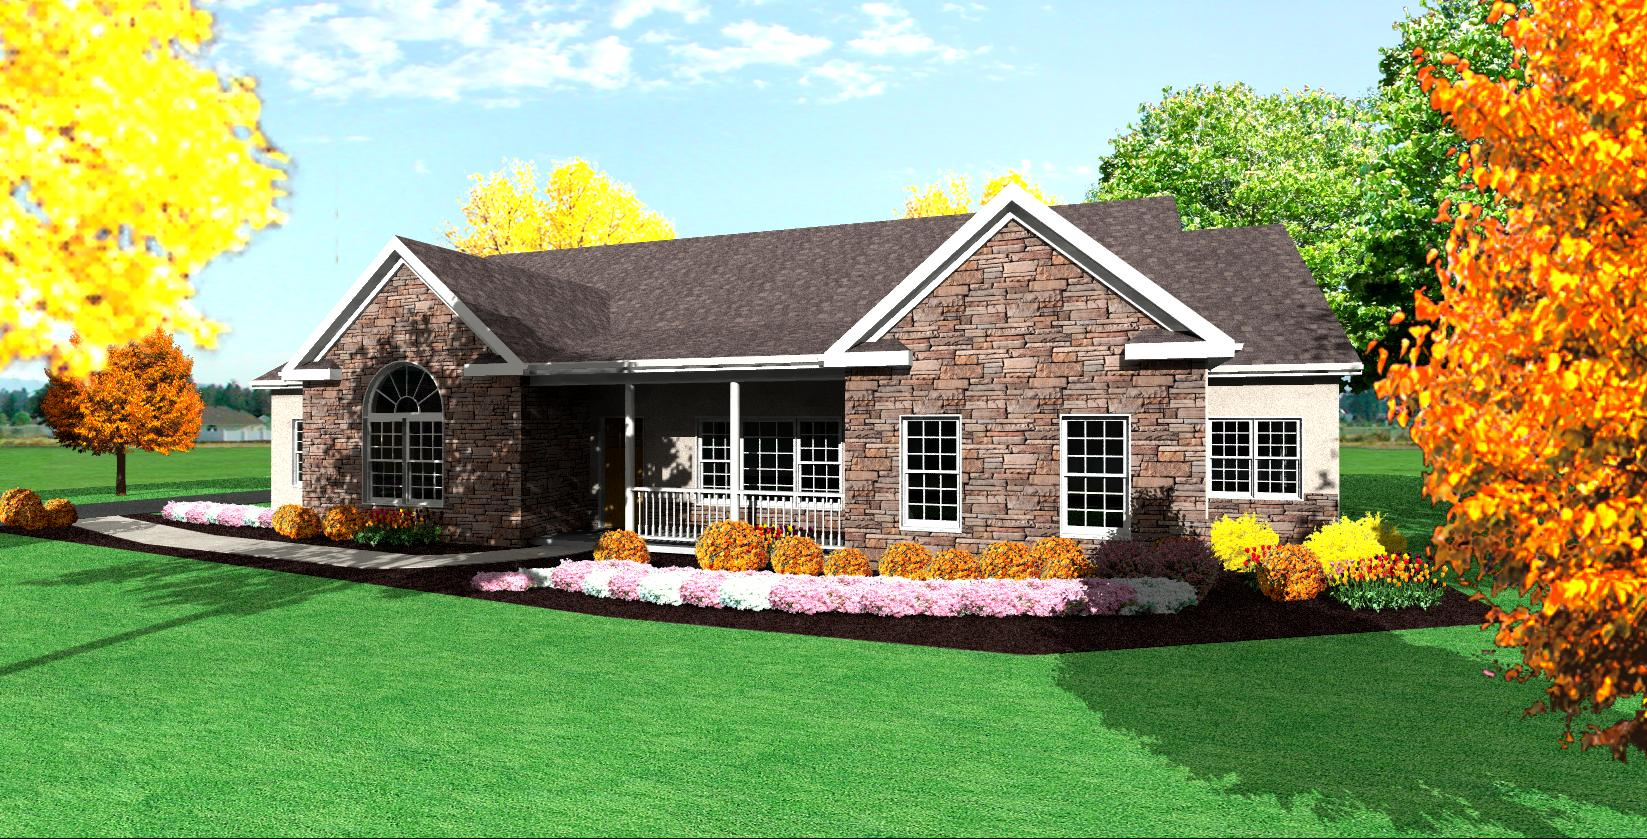 Simple Modern Single Story House Plans Your Dream Home